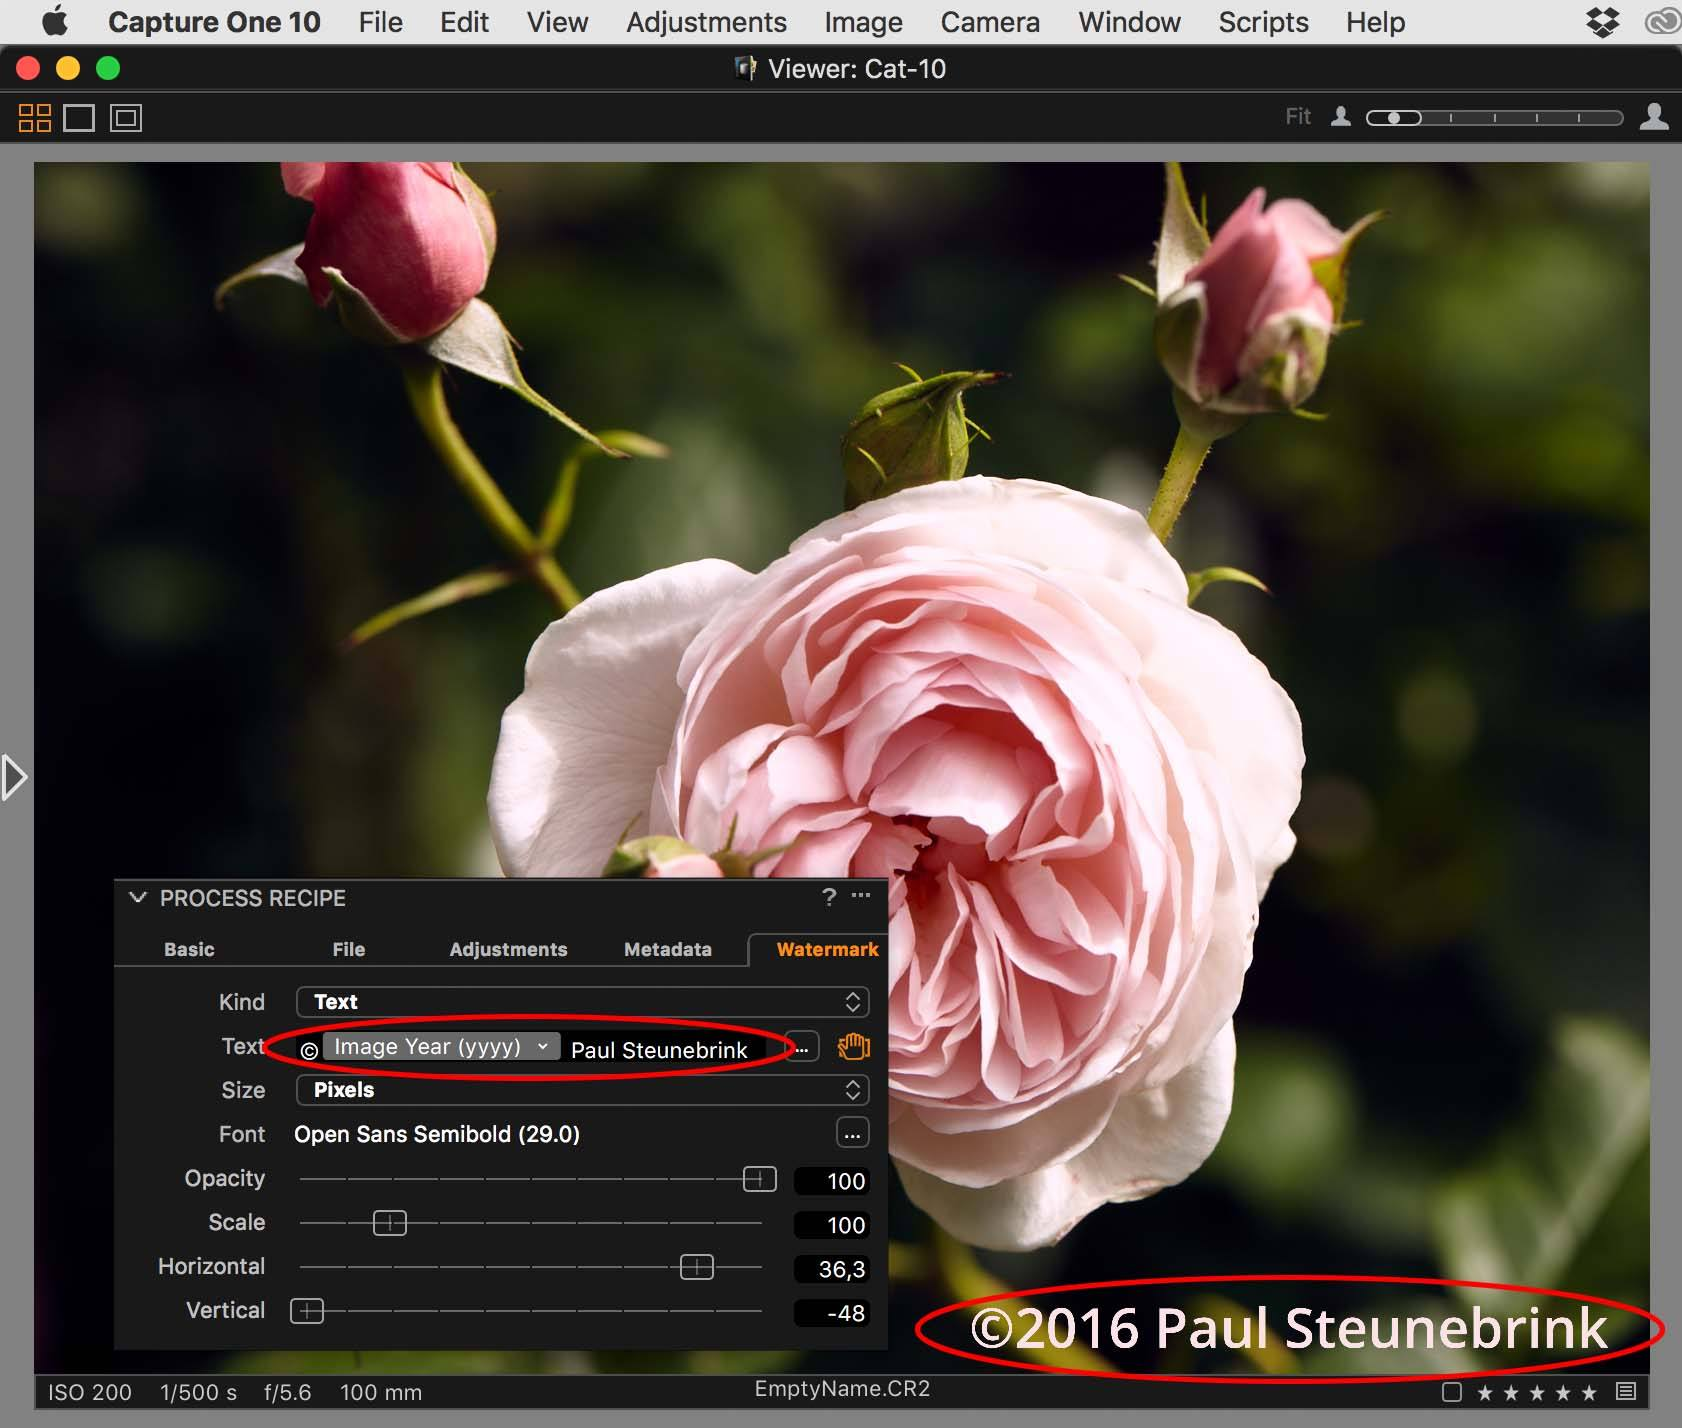 capture one pro 10.1 review, watermark with token